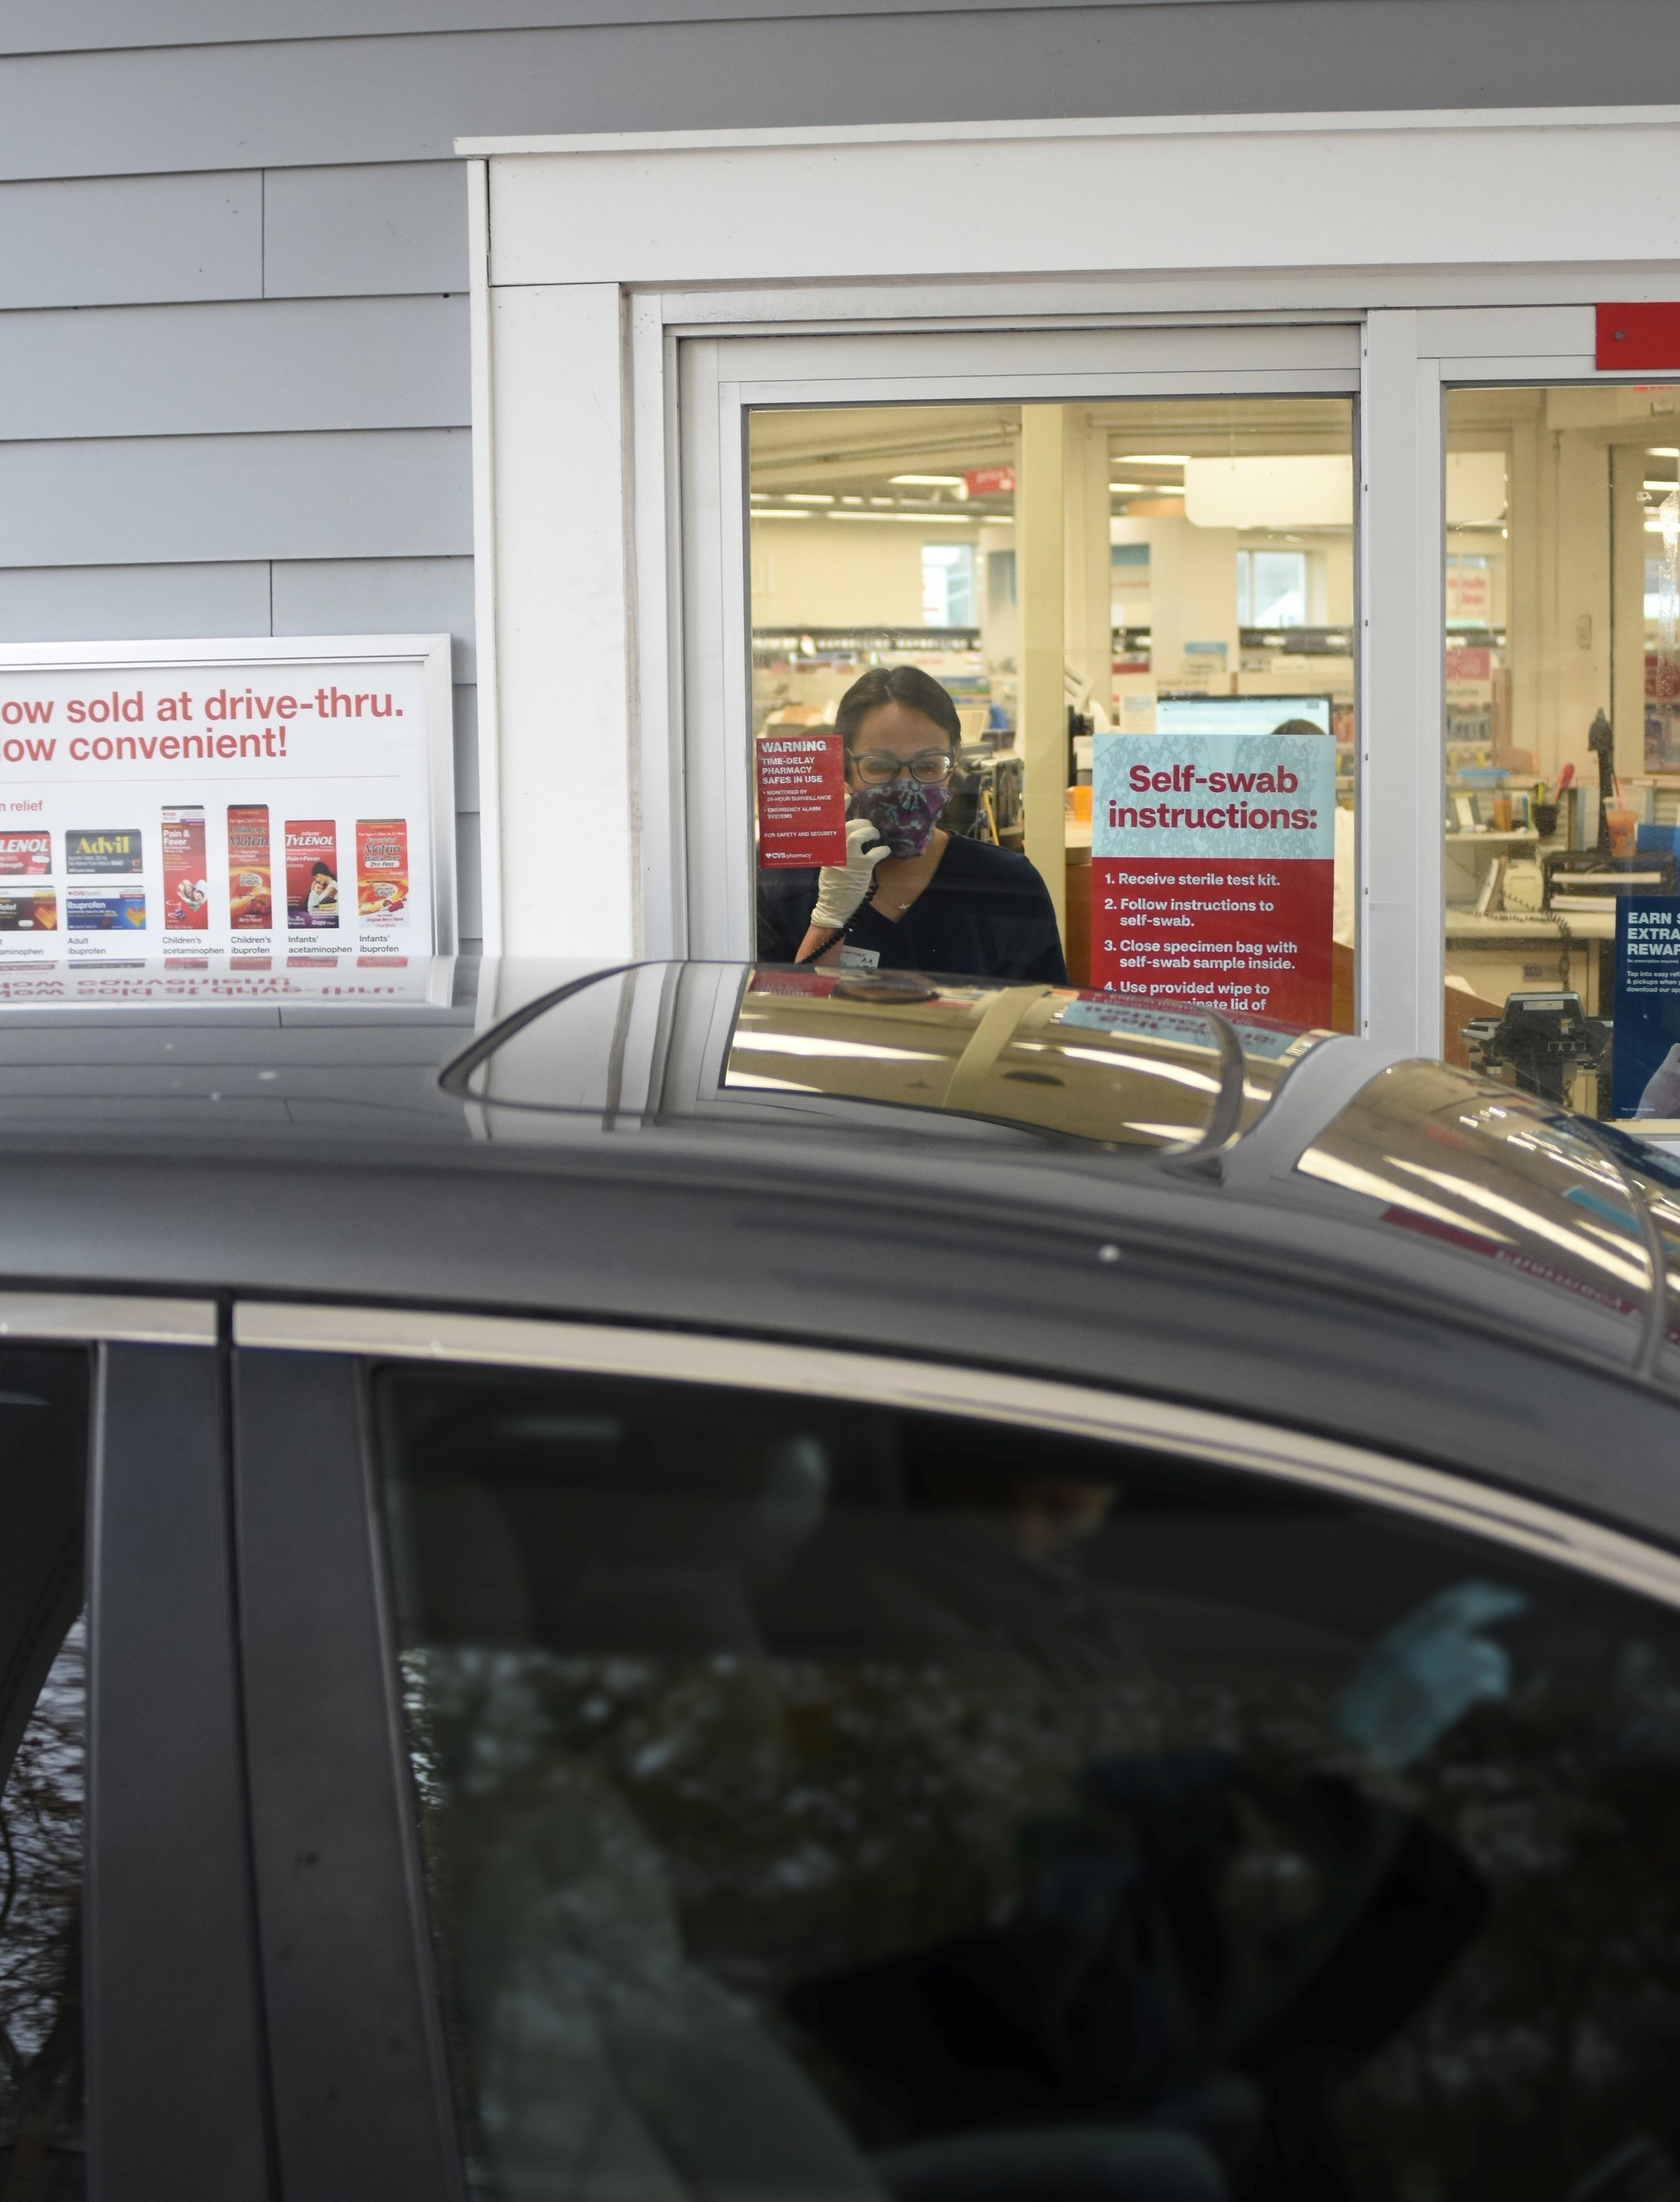 Cvs Health Opens 23 New Drive Thru Test Sites In Georgia As Part Of Nationwide Covid 19 Response